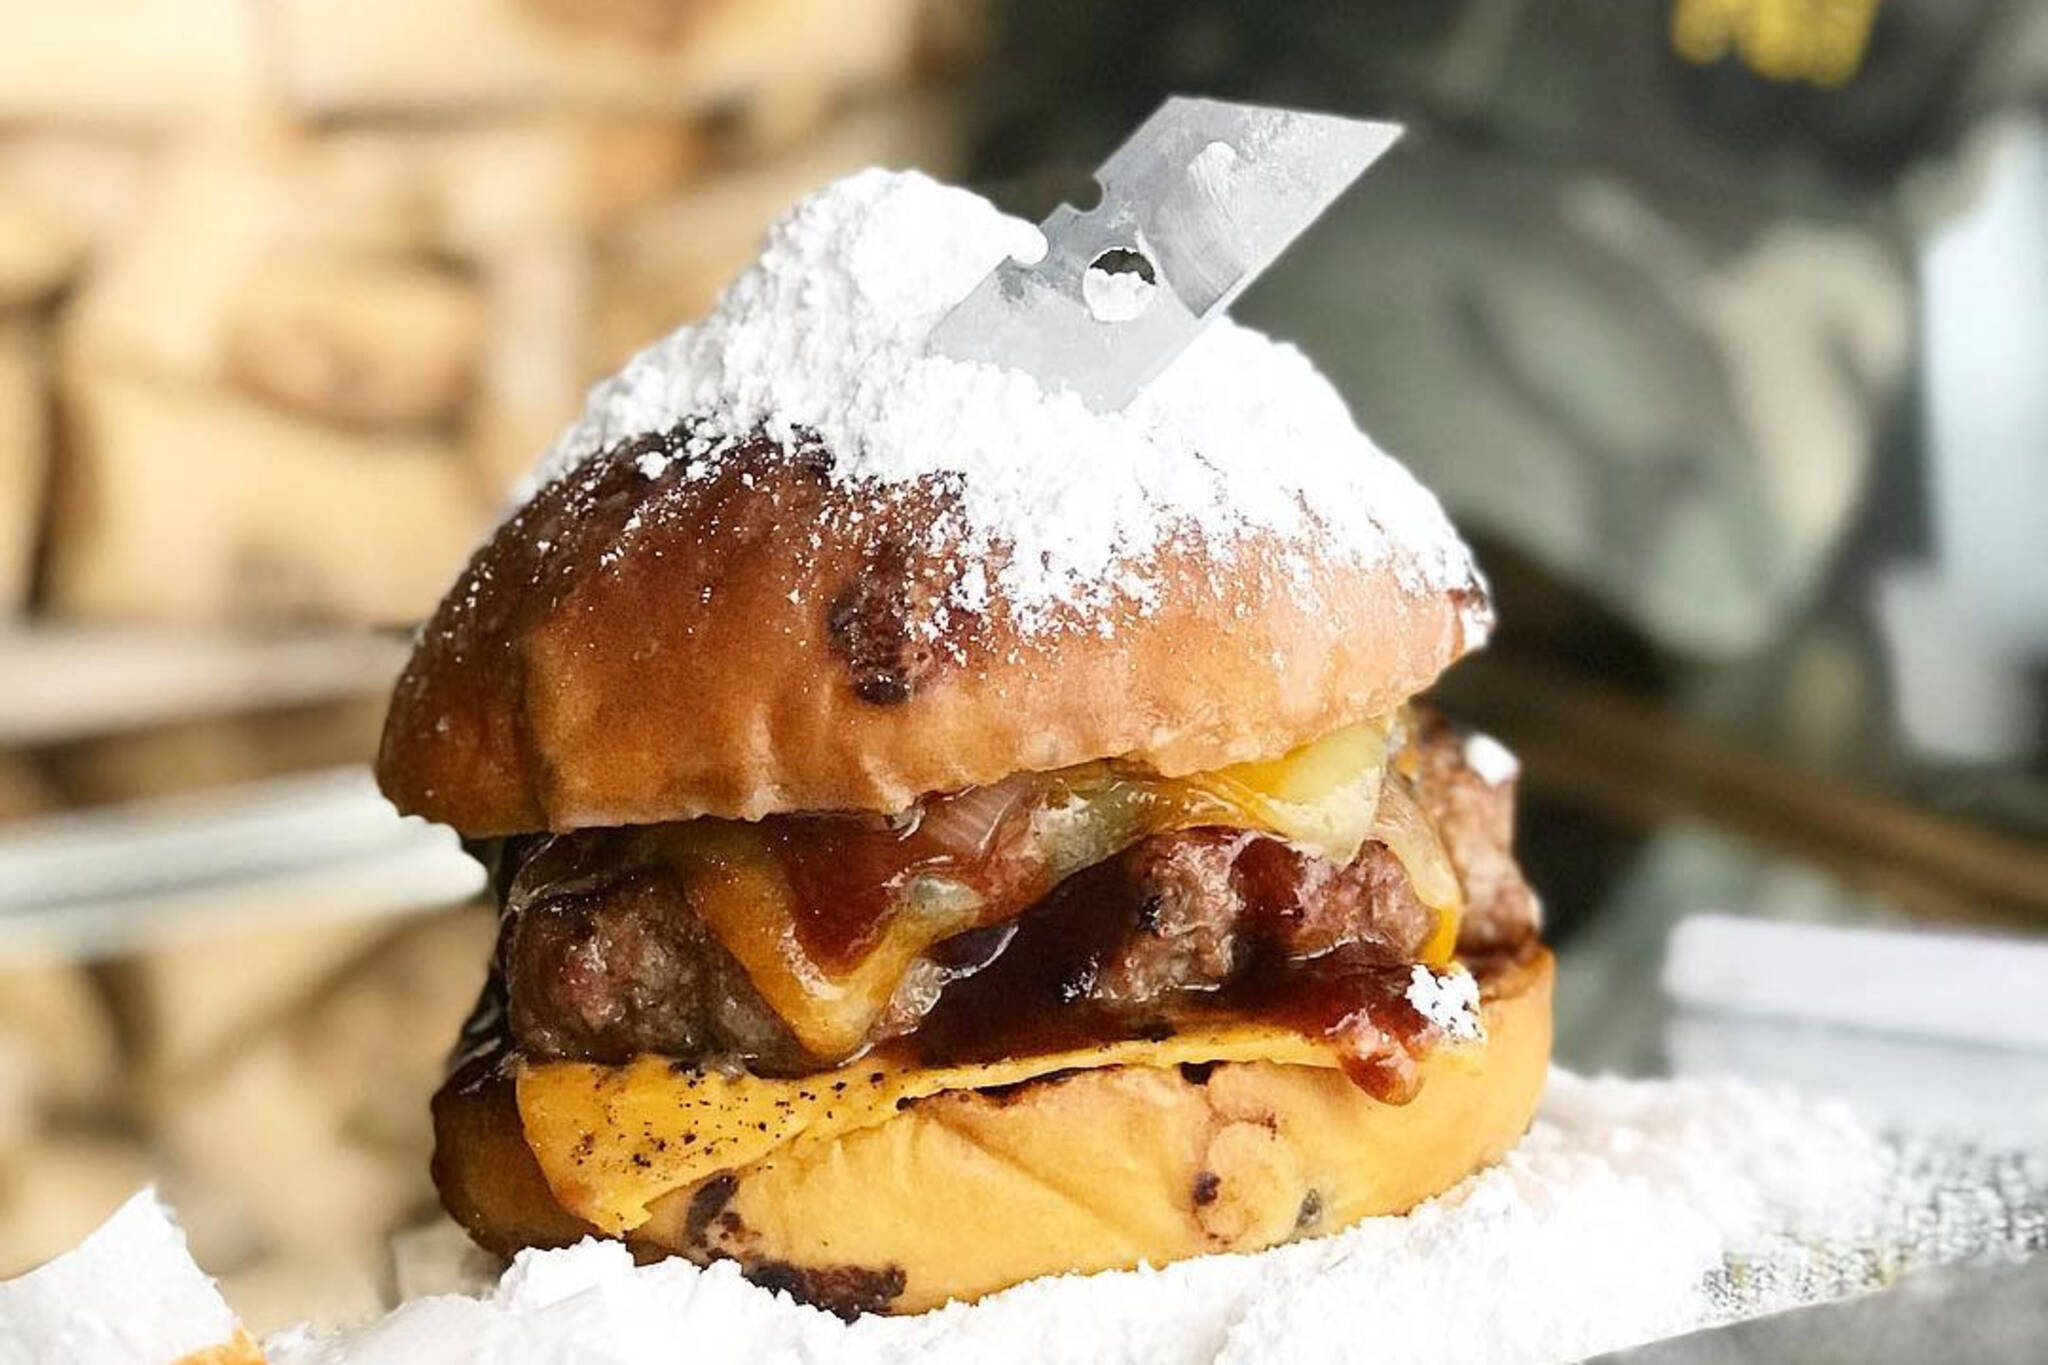 cocaine burger